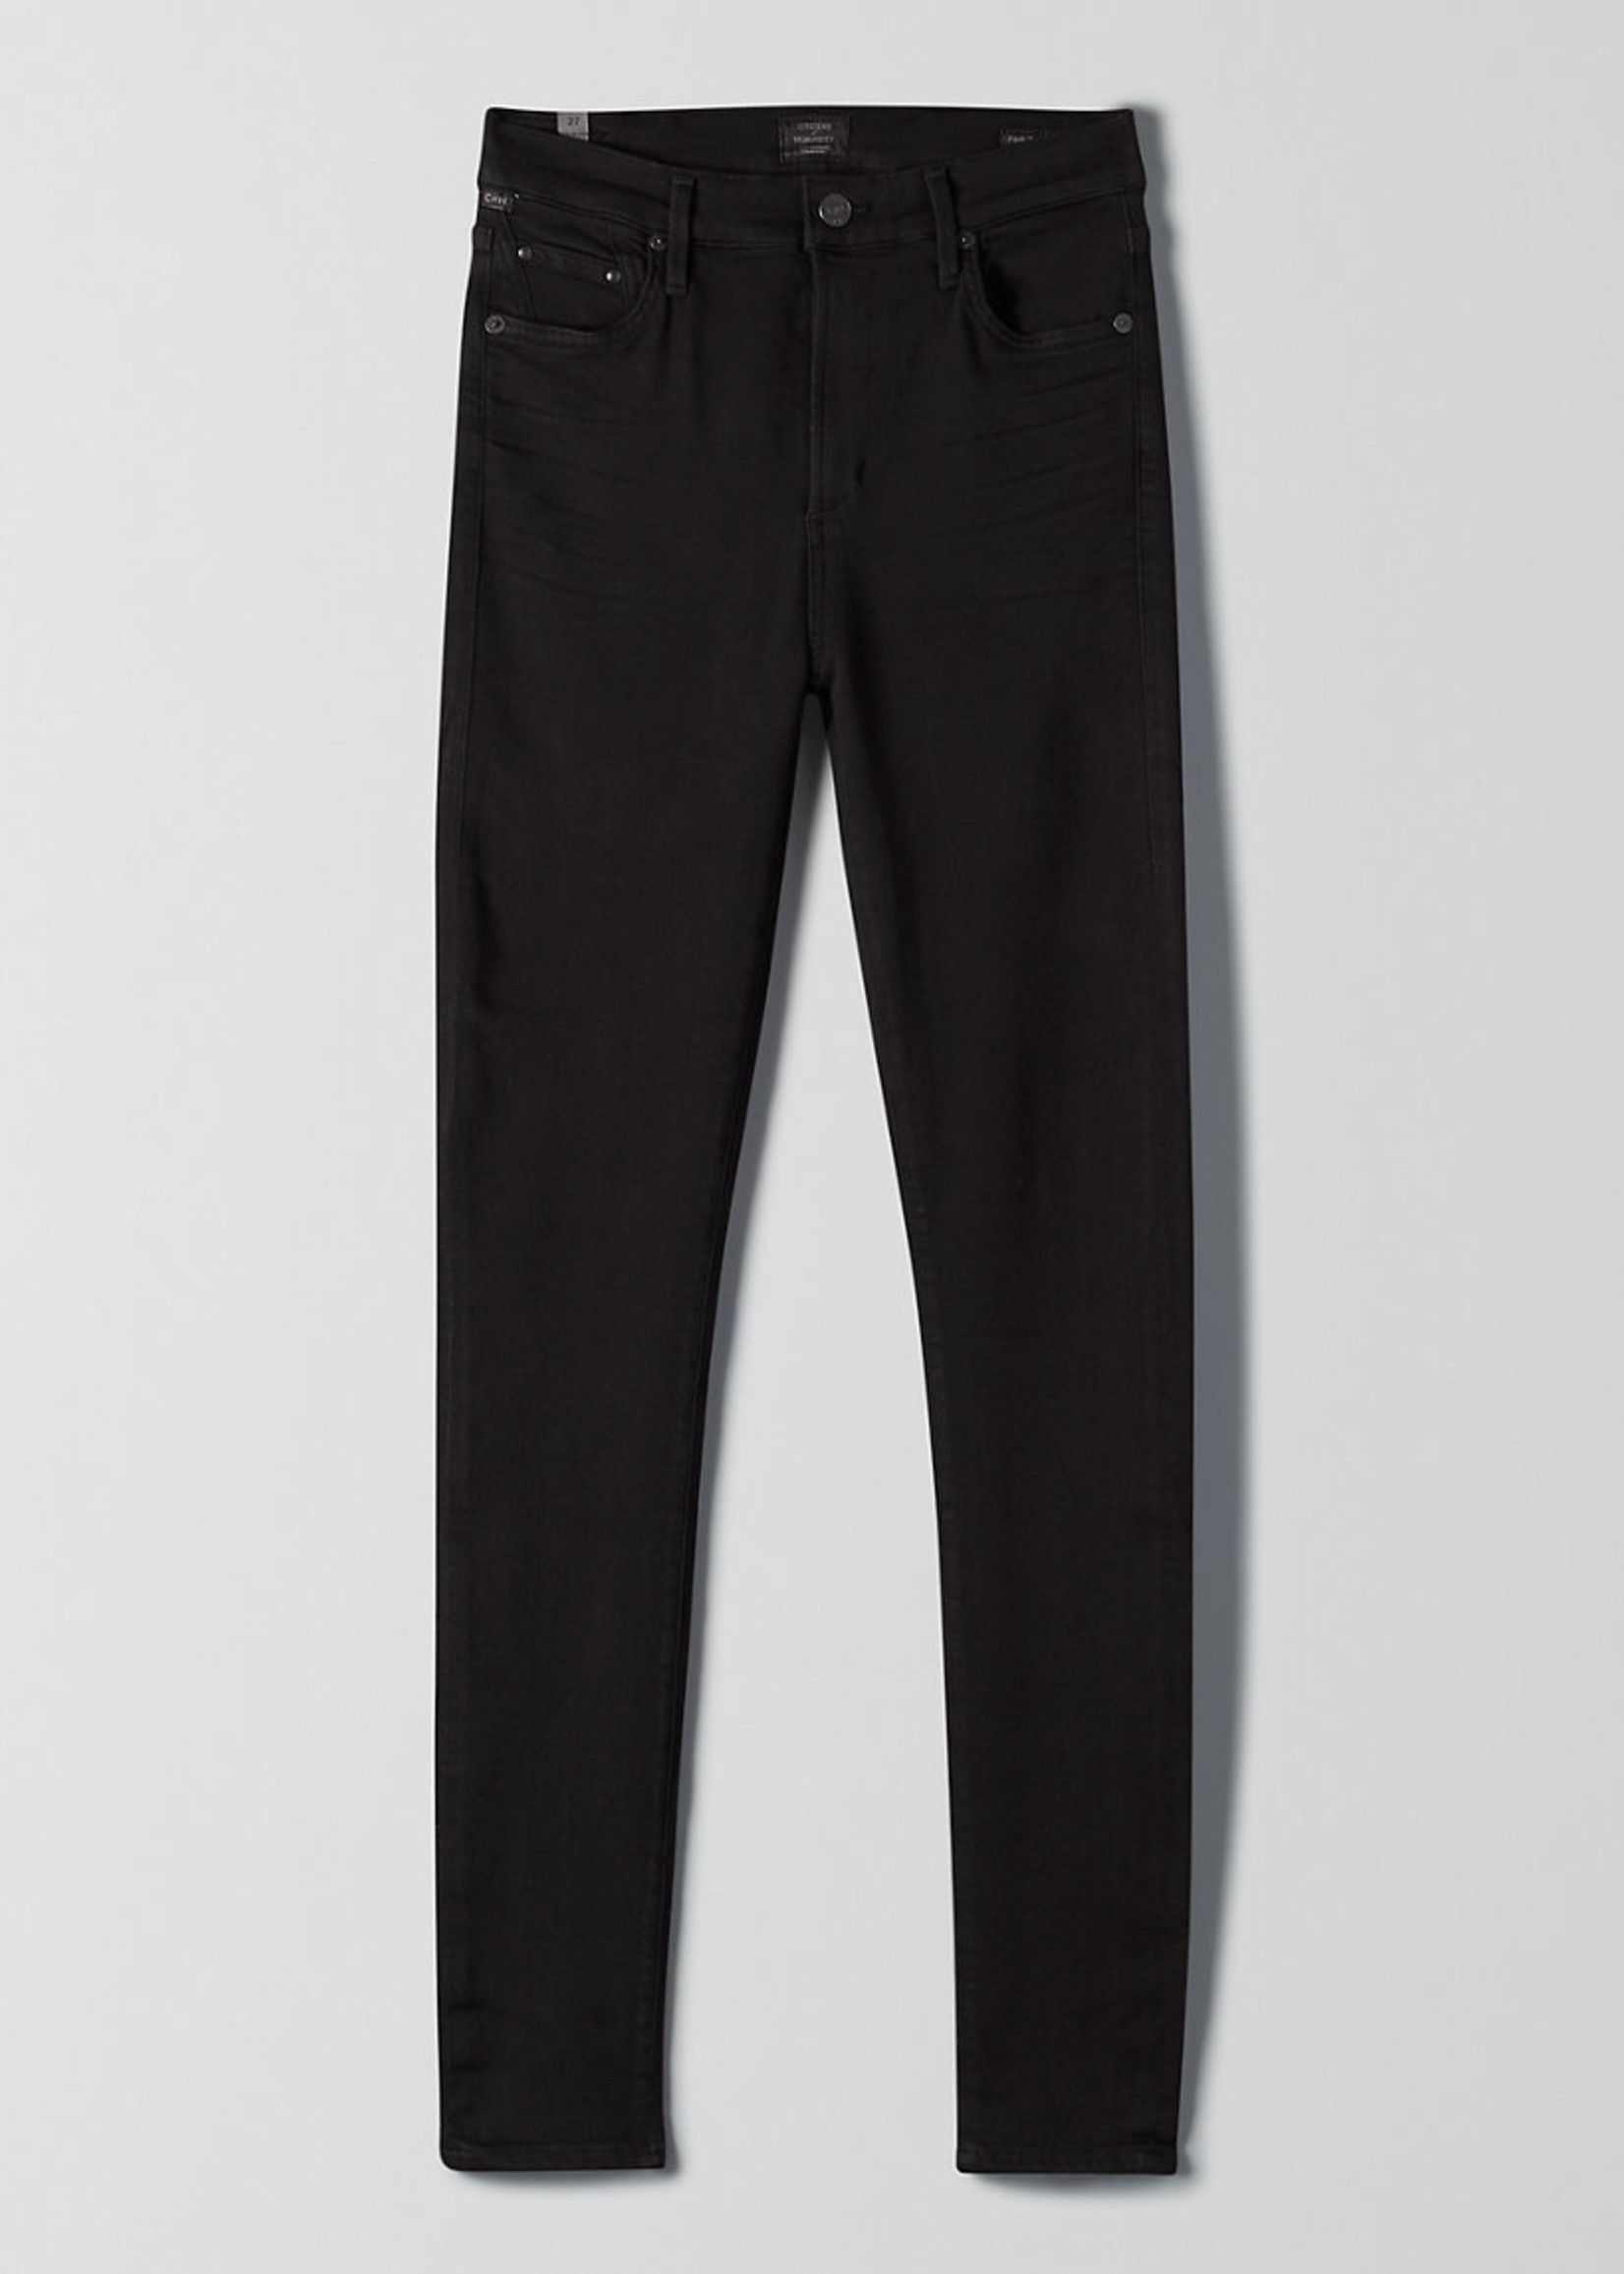 CITIZENS of HUMANITY All Black Denim